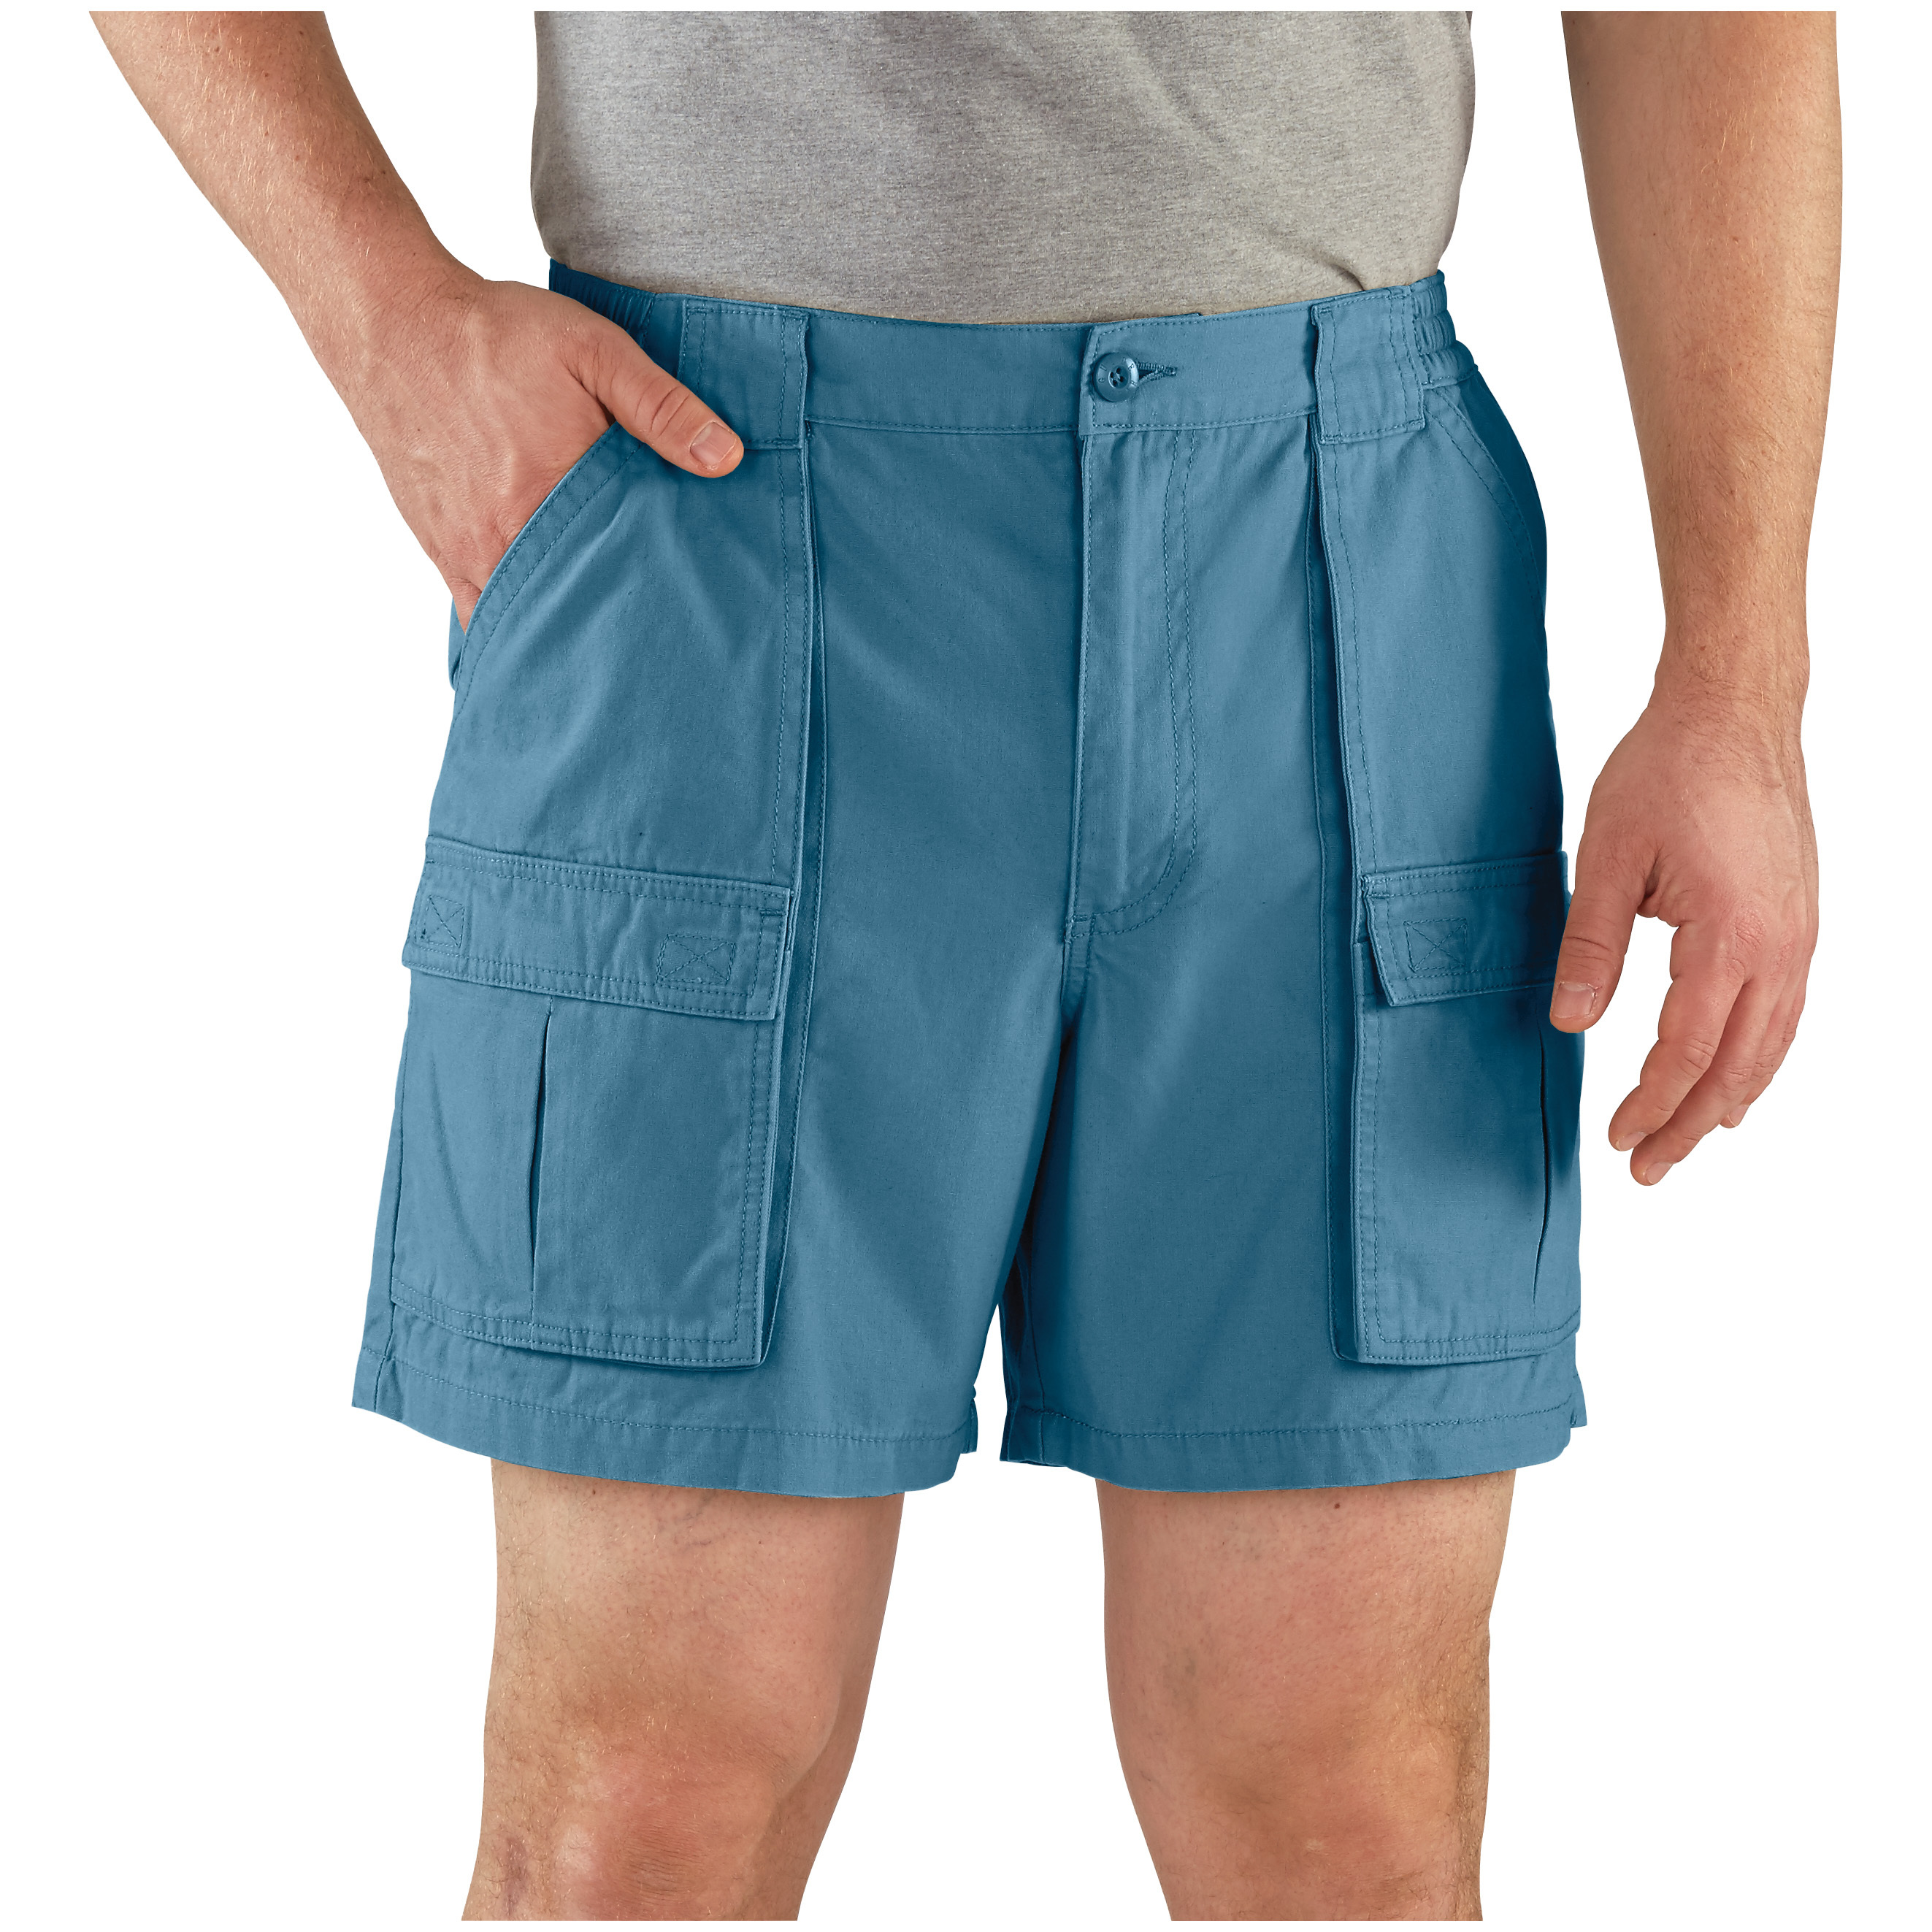 Guide Gear Men's Wakota Cargo Shorts 6 inch Inseam - $24.99 ...